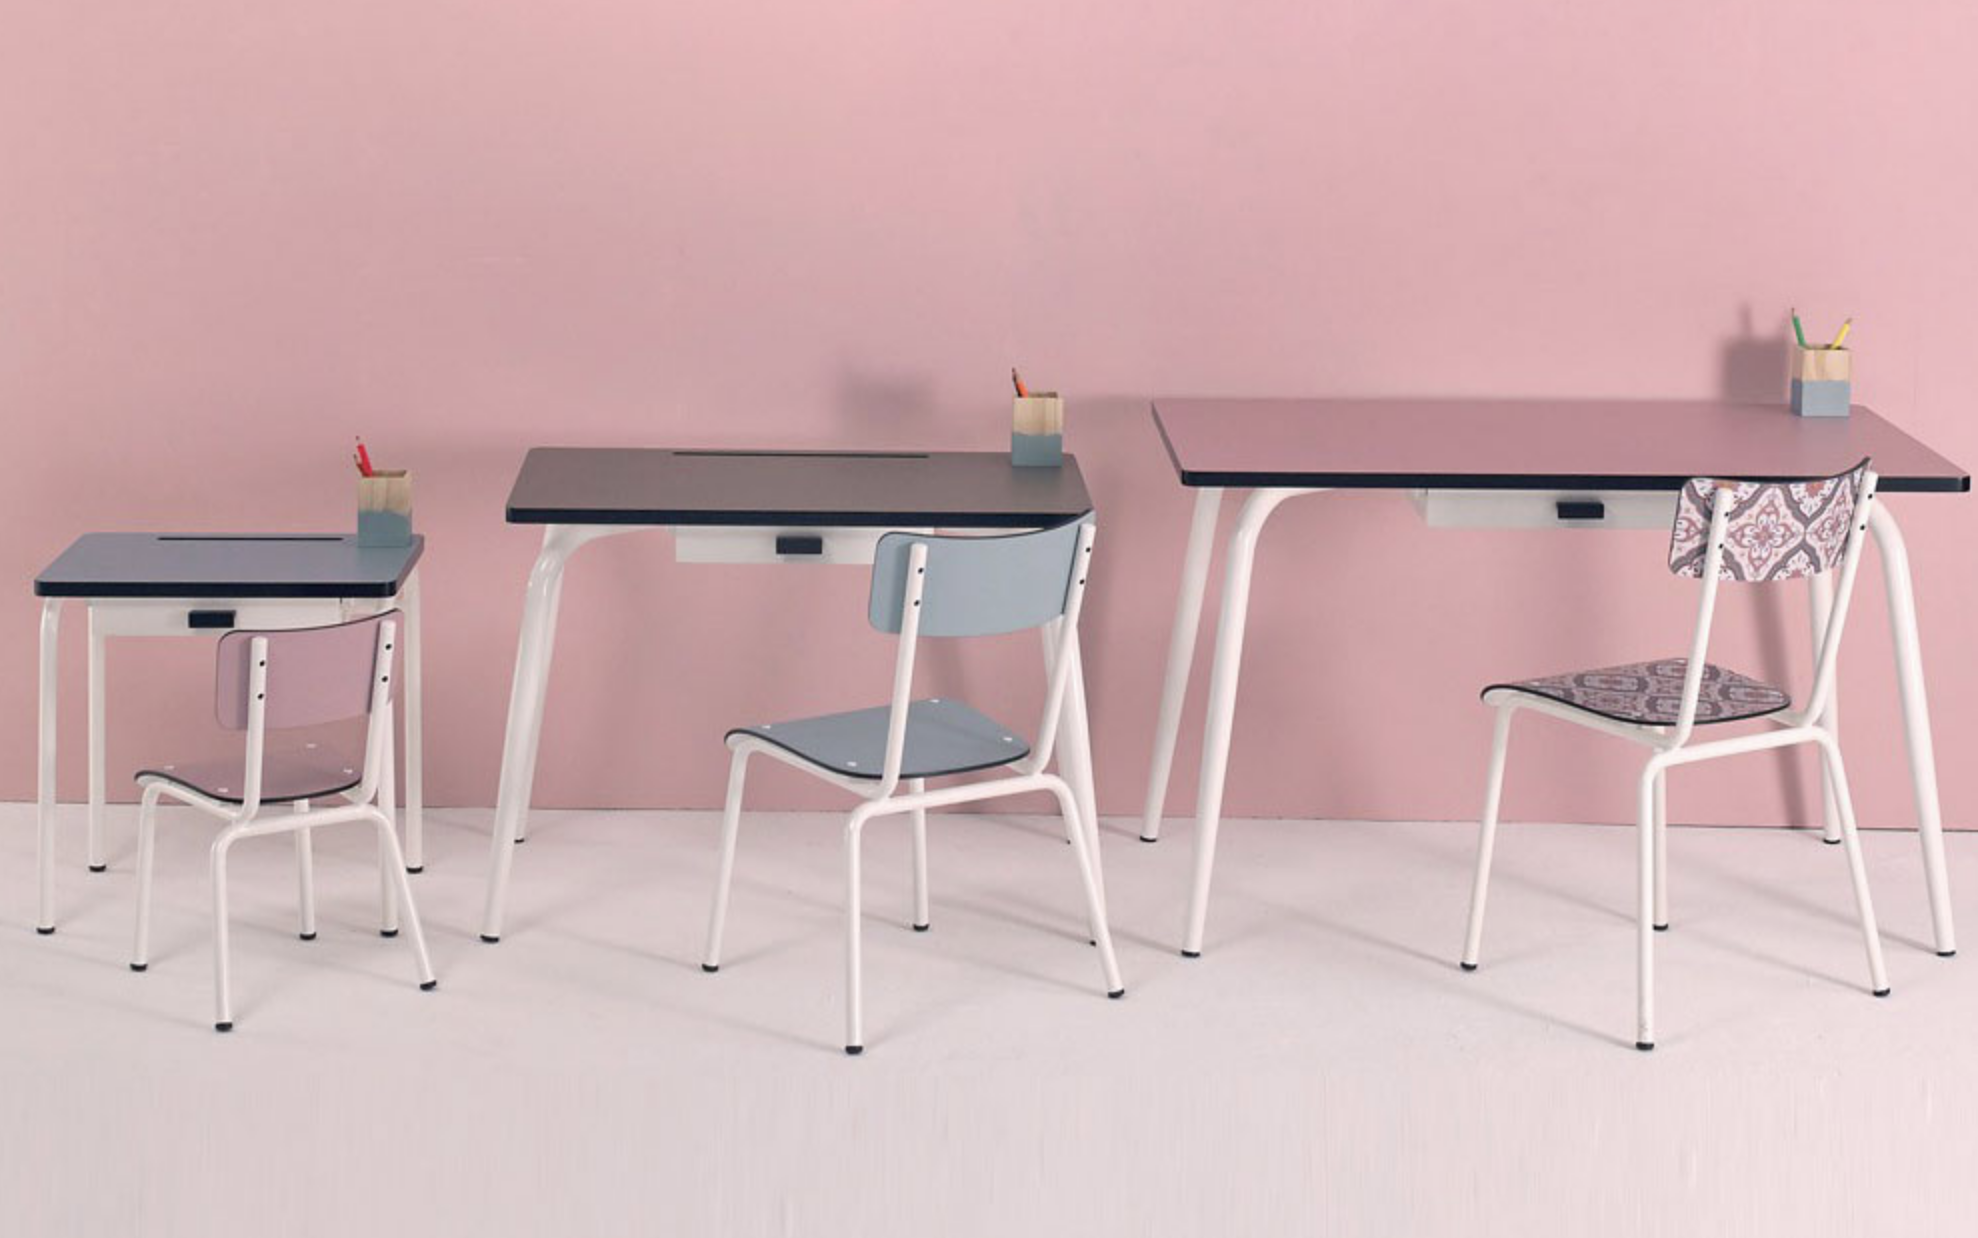 Retro Style with this Little Suzie chairs by  LES GAMBETTES  #backtothe50s